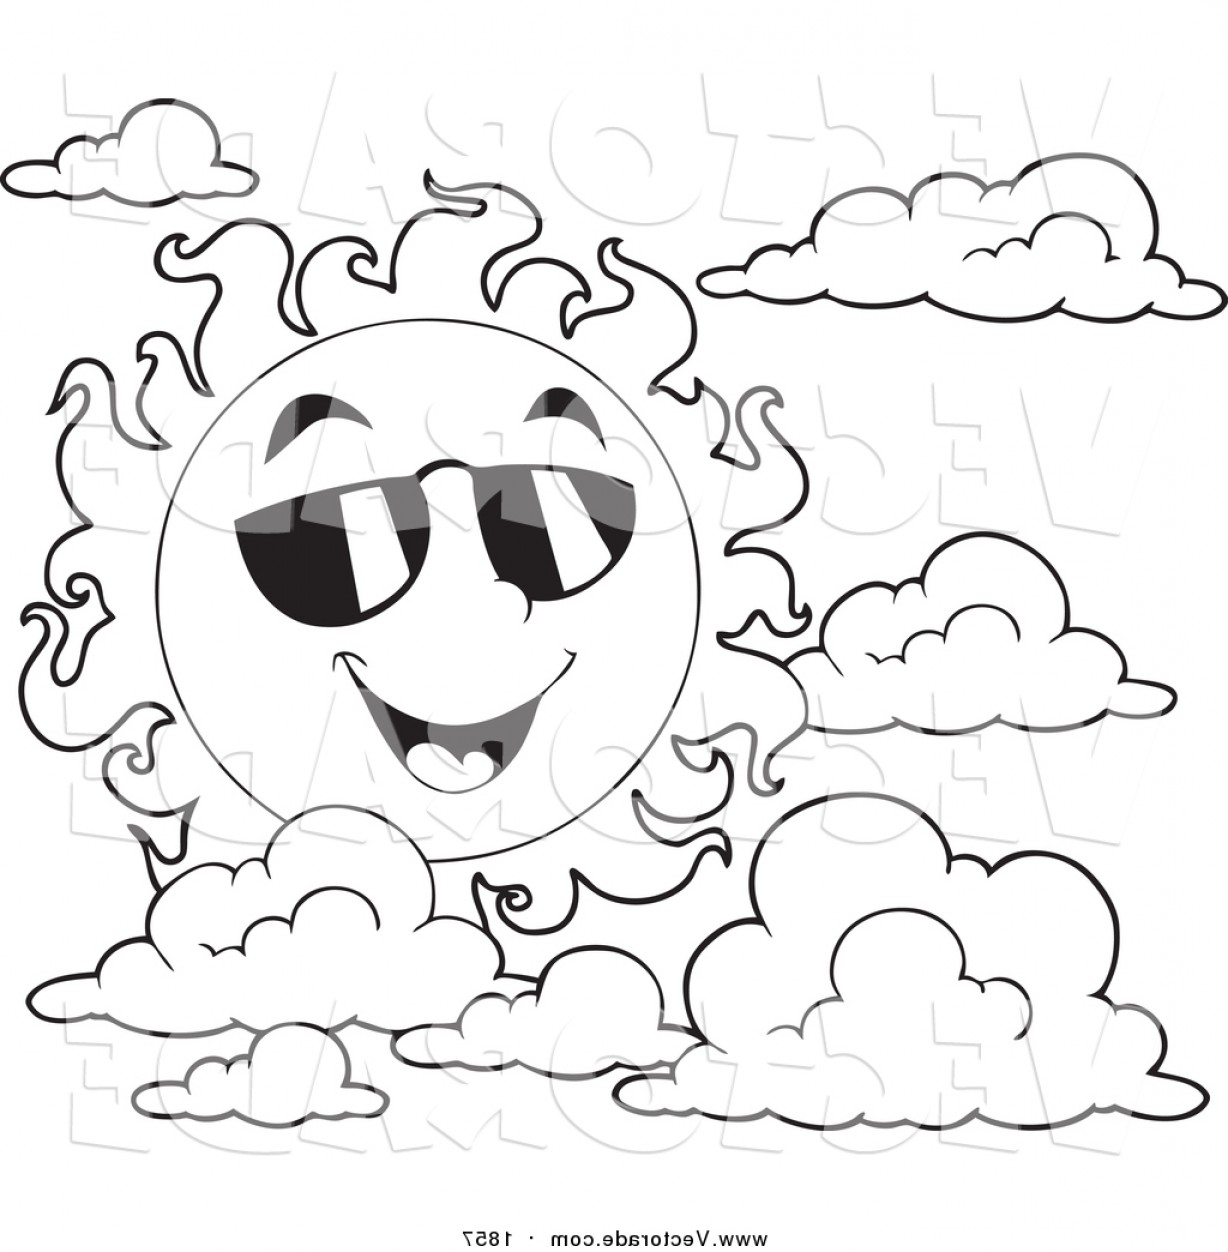 Black Sunglasses Clip Art Vector: Vector Of A Black And White Happy Summer Sun With Shades And Clouds By Visekart